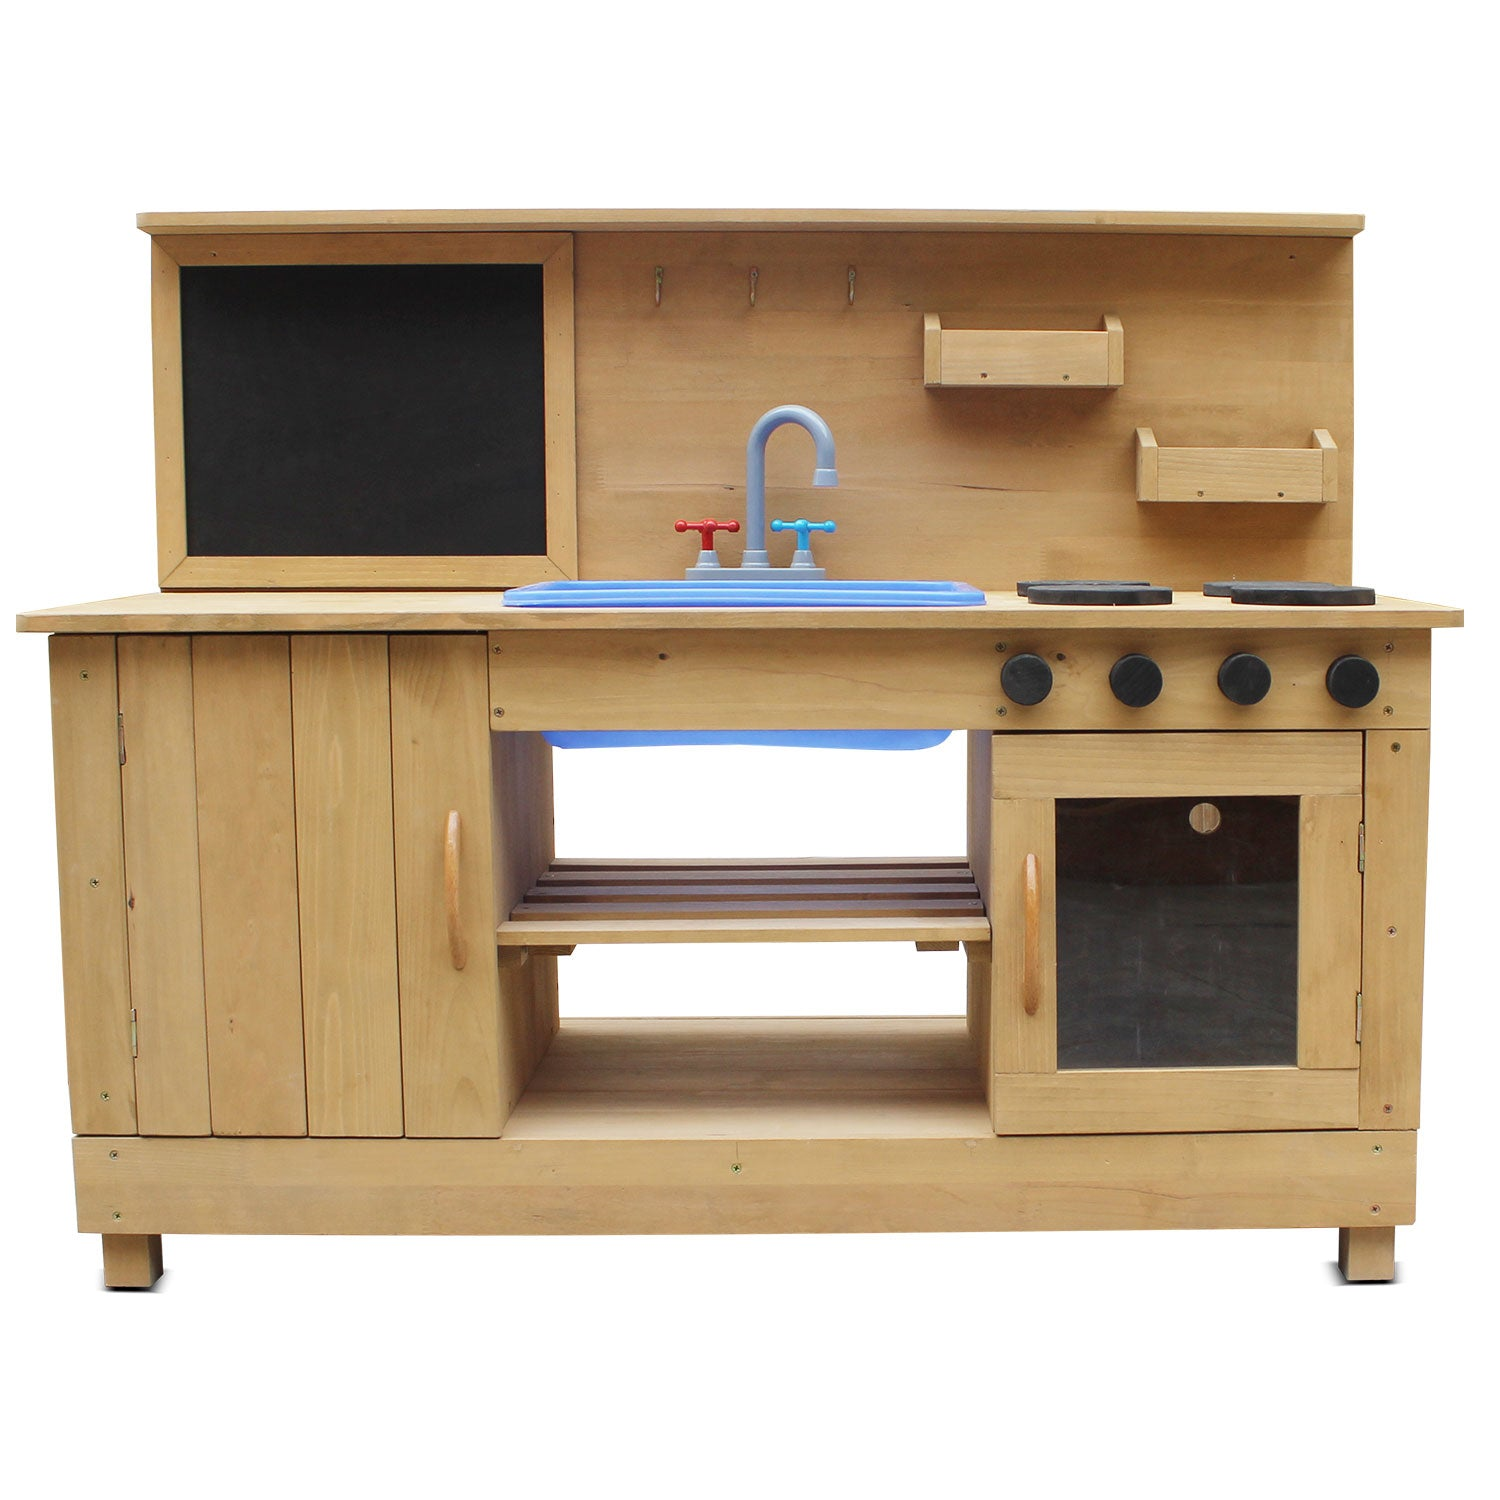 Lifespan Kids Roma V2 Outdoor Play Kitchen